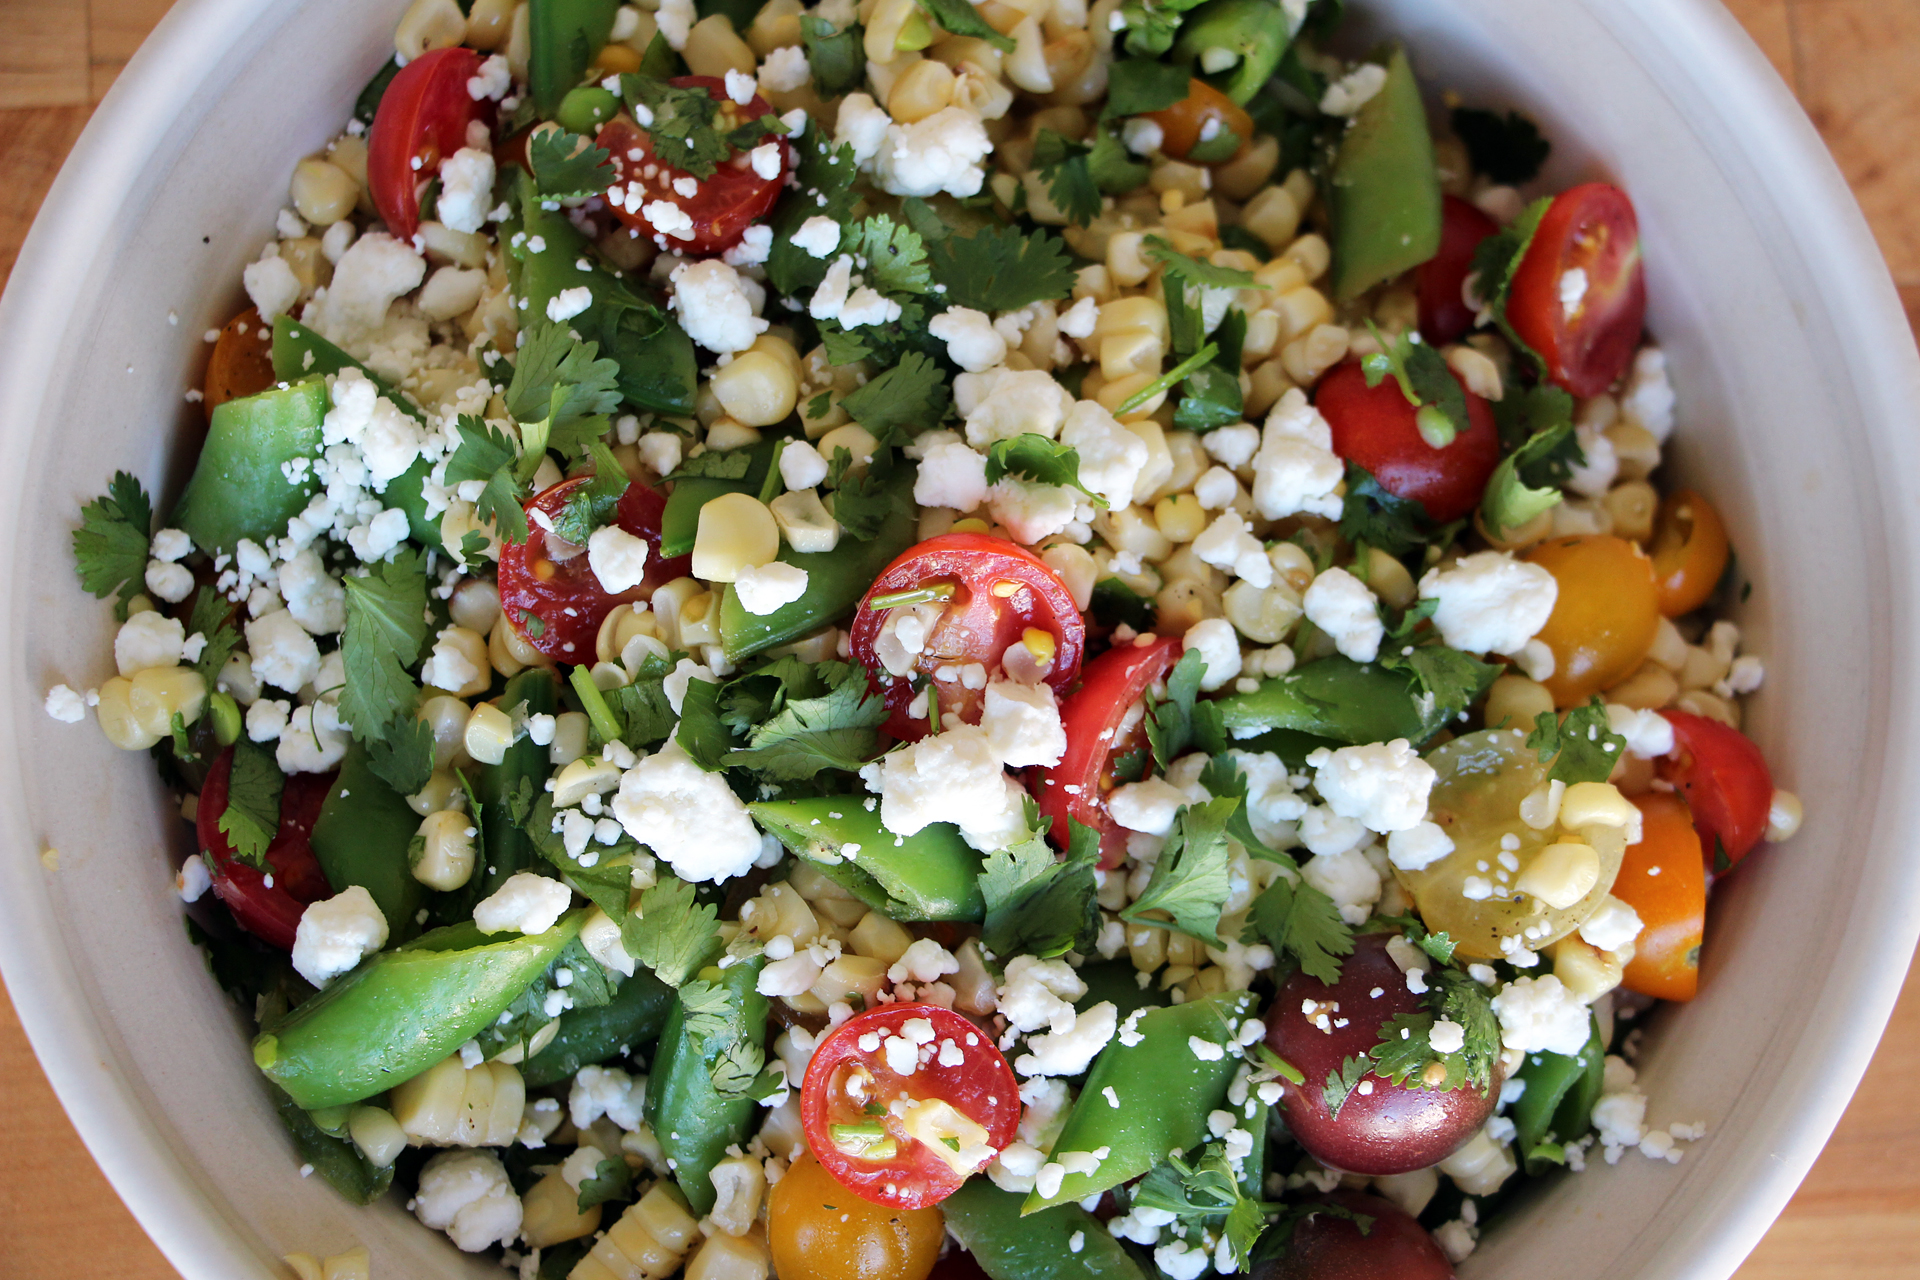 Grilled Corn Salad with Sugar Snaps, Cherry Tomatoes, and Goat Cheese